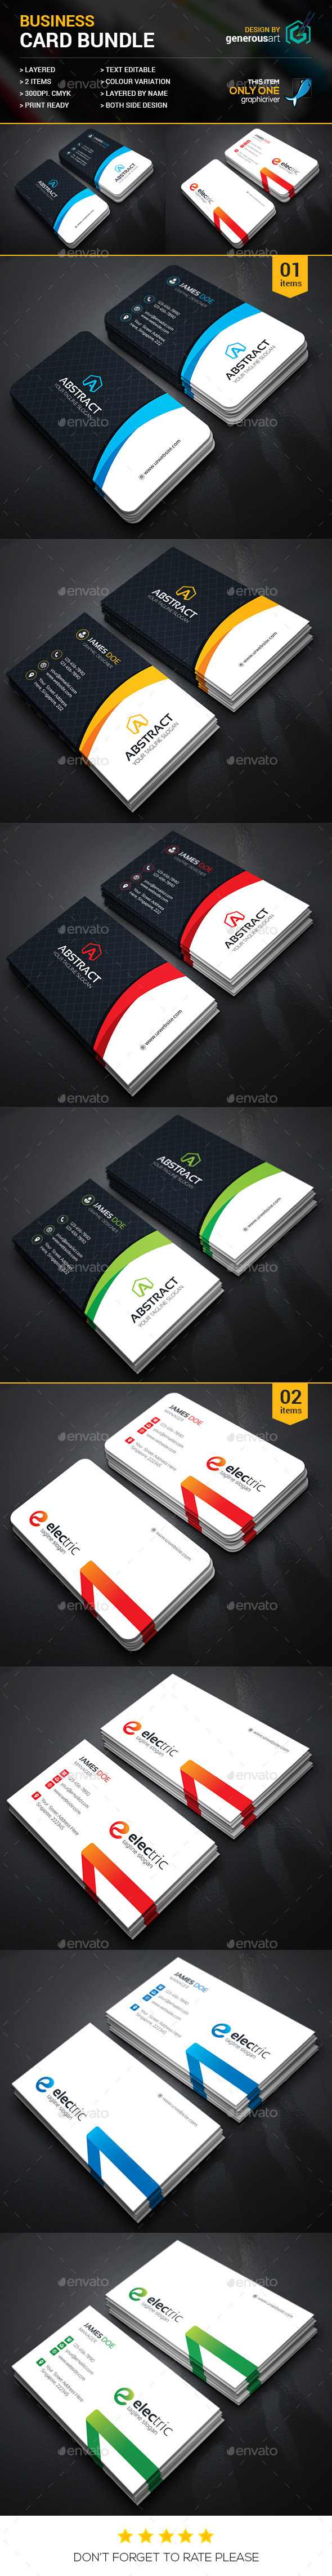 Business Card Bundle 2 in 1 11